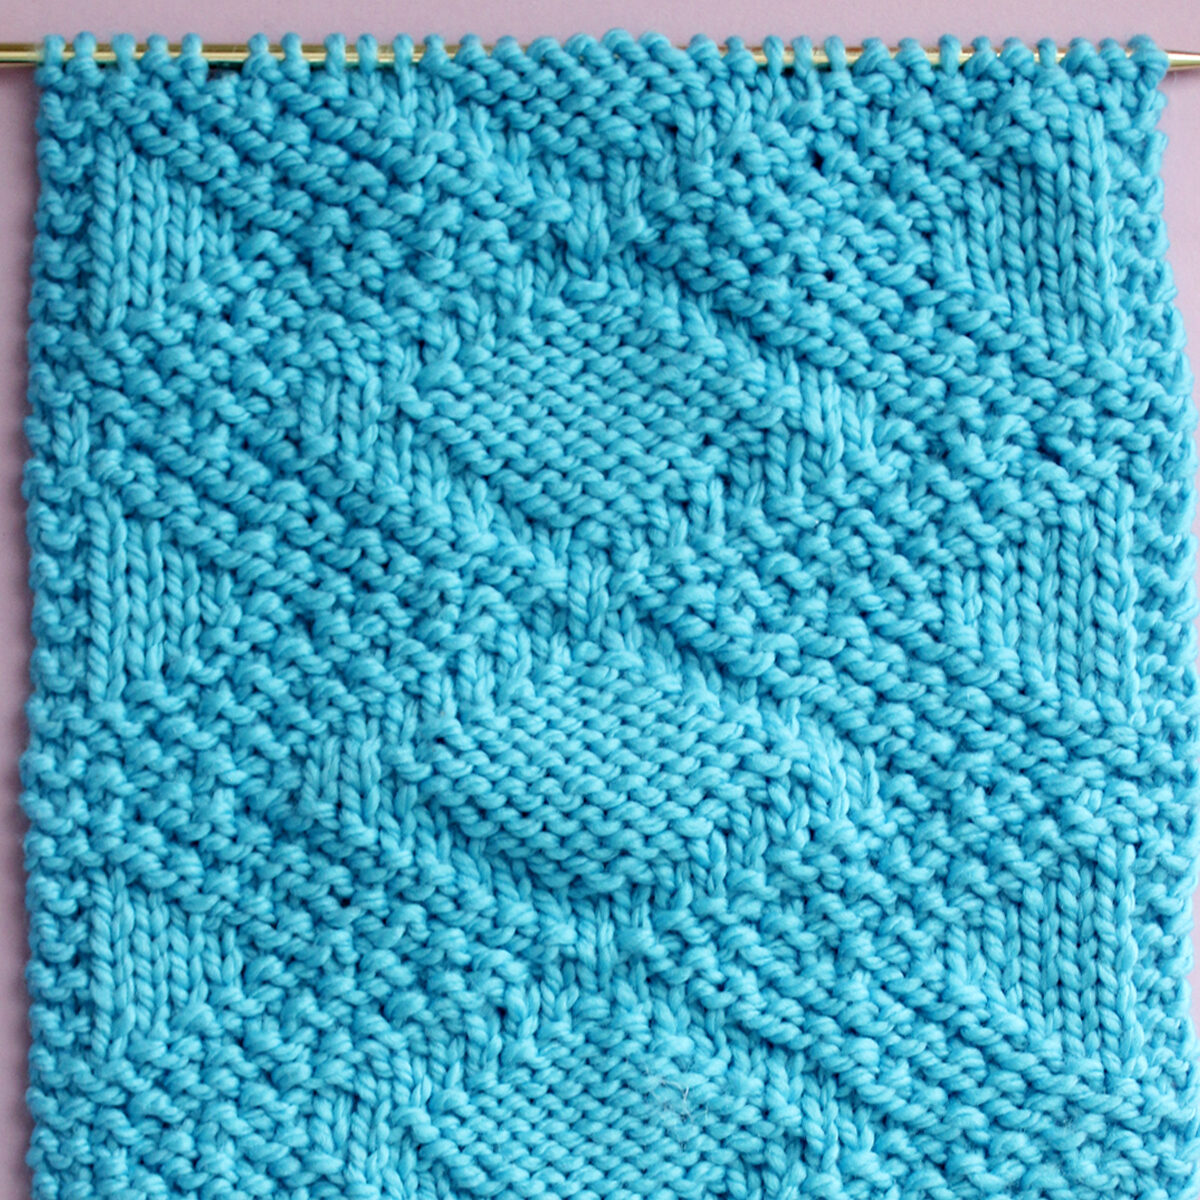 Knitted Swatch of the Fancy Diamond Knit Stitch Pattern texture in blue color yarn on a straight knitting needle.